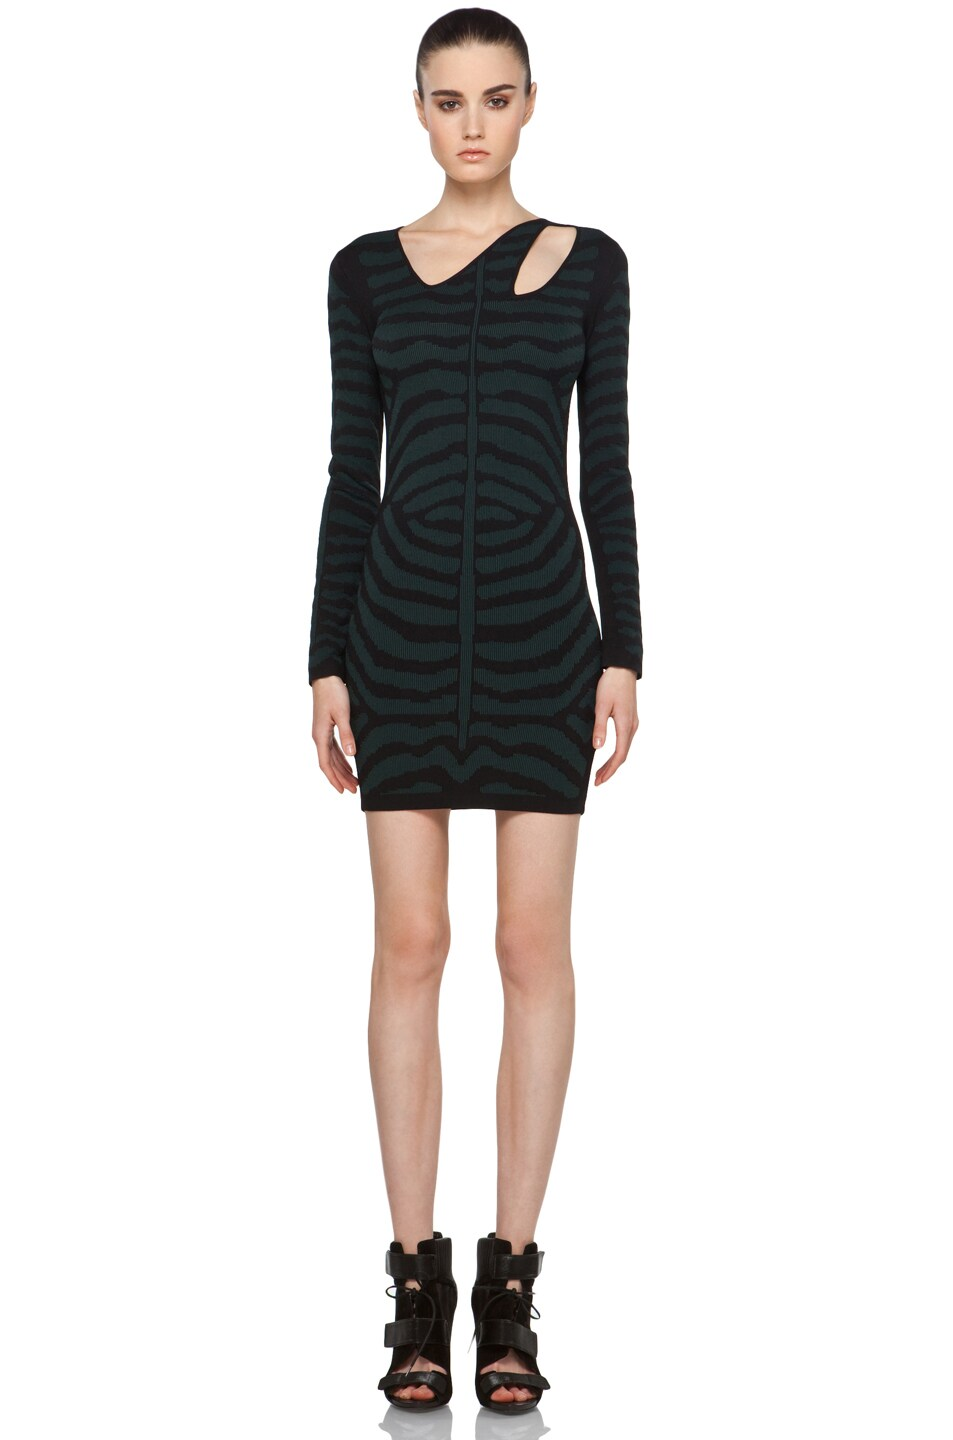 Kimberly Ovitz Alder Dress In Black Algae Fwrd